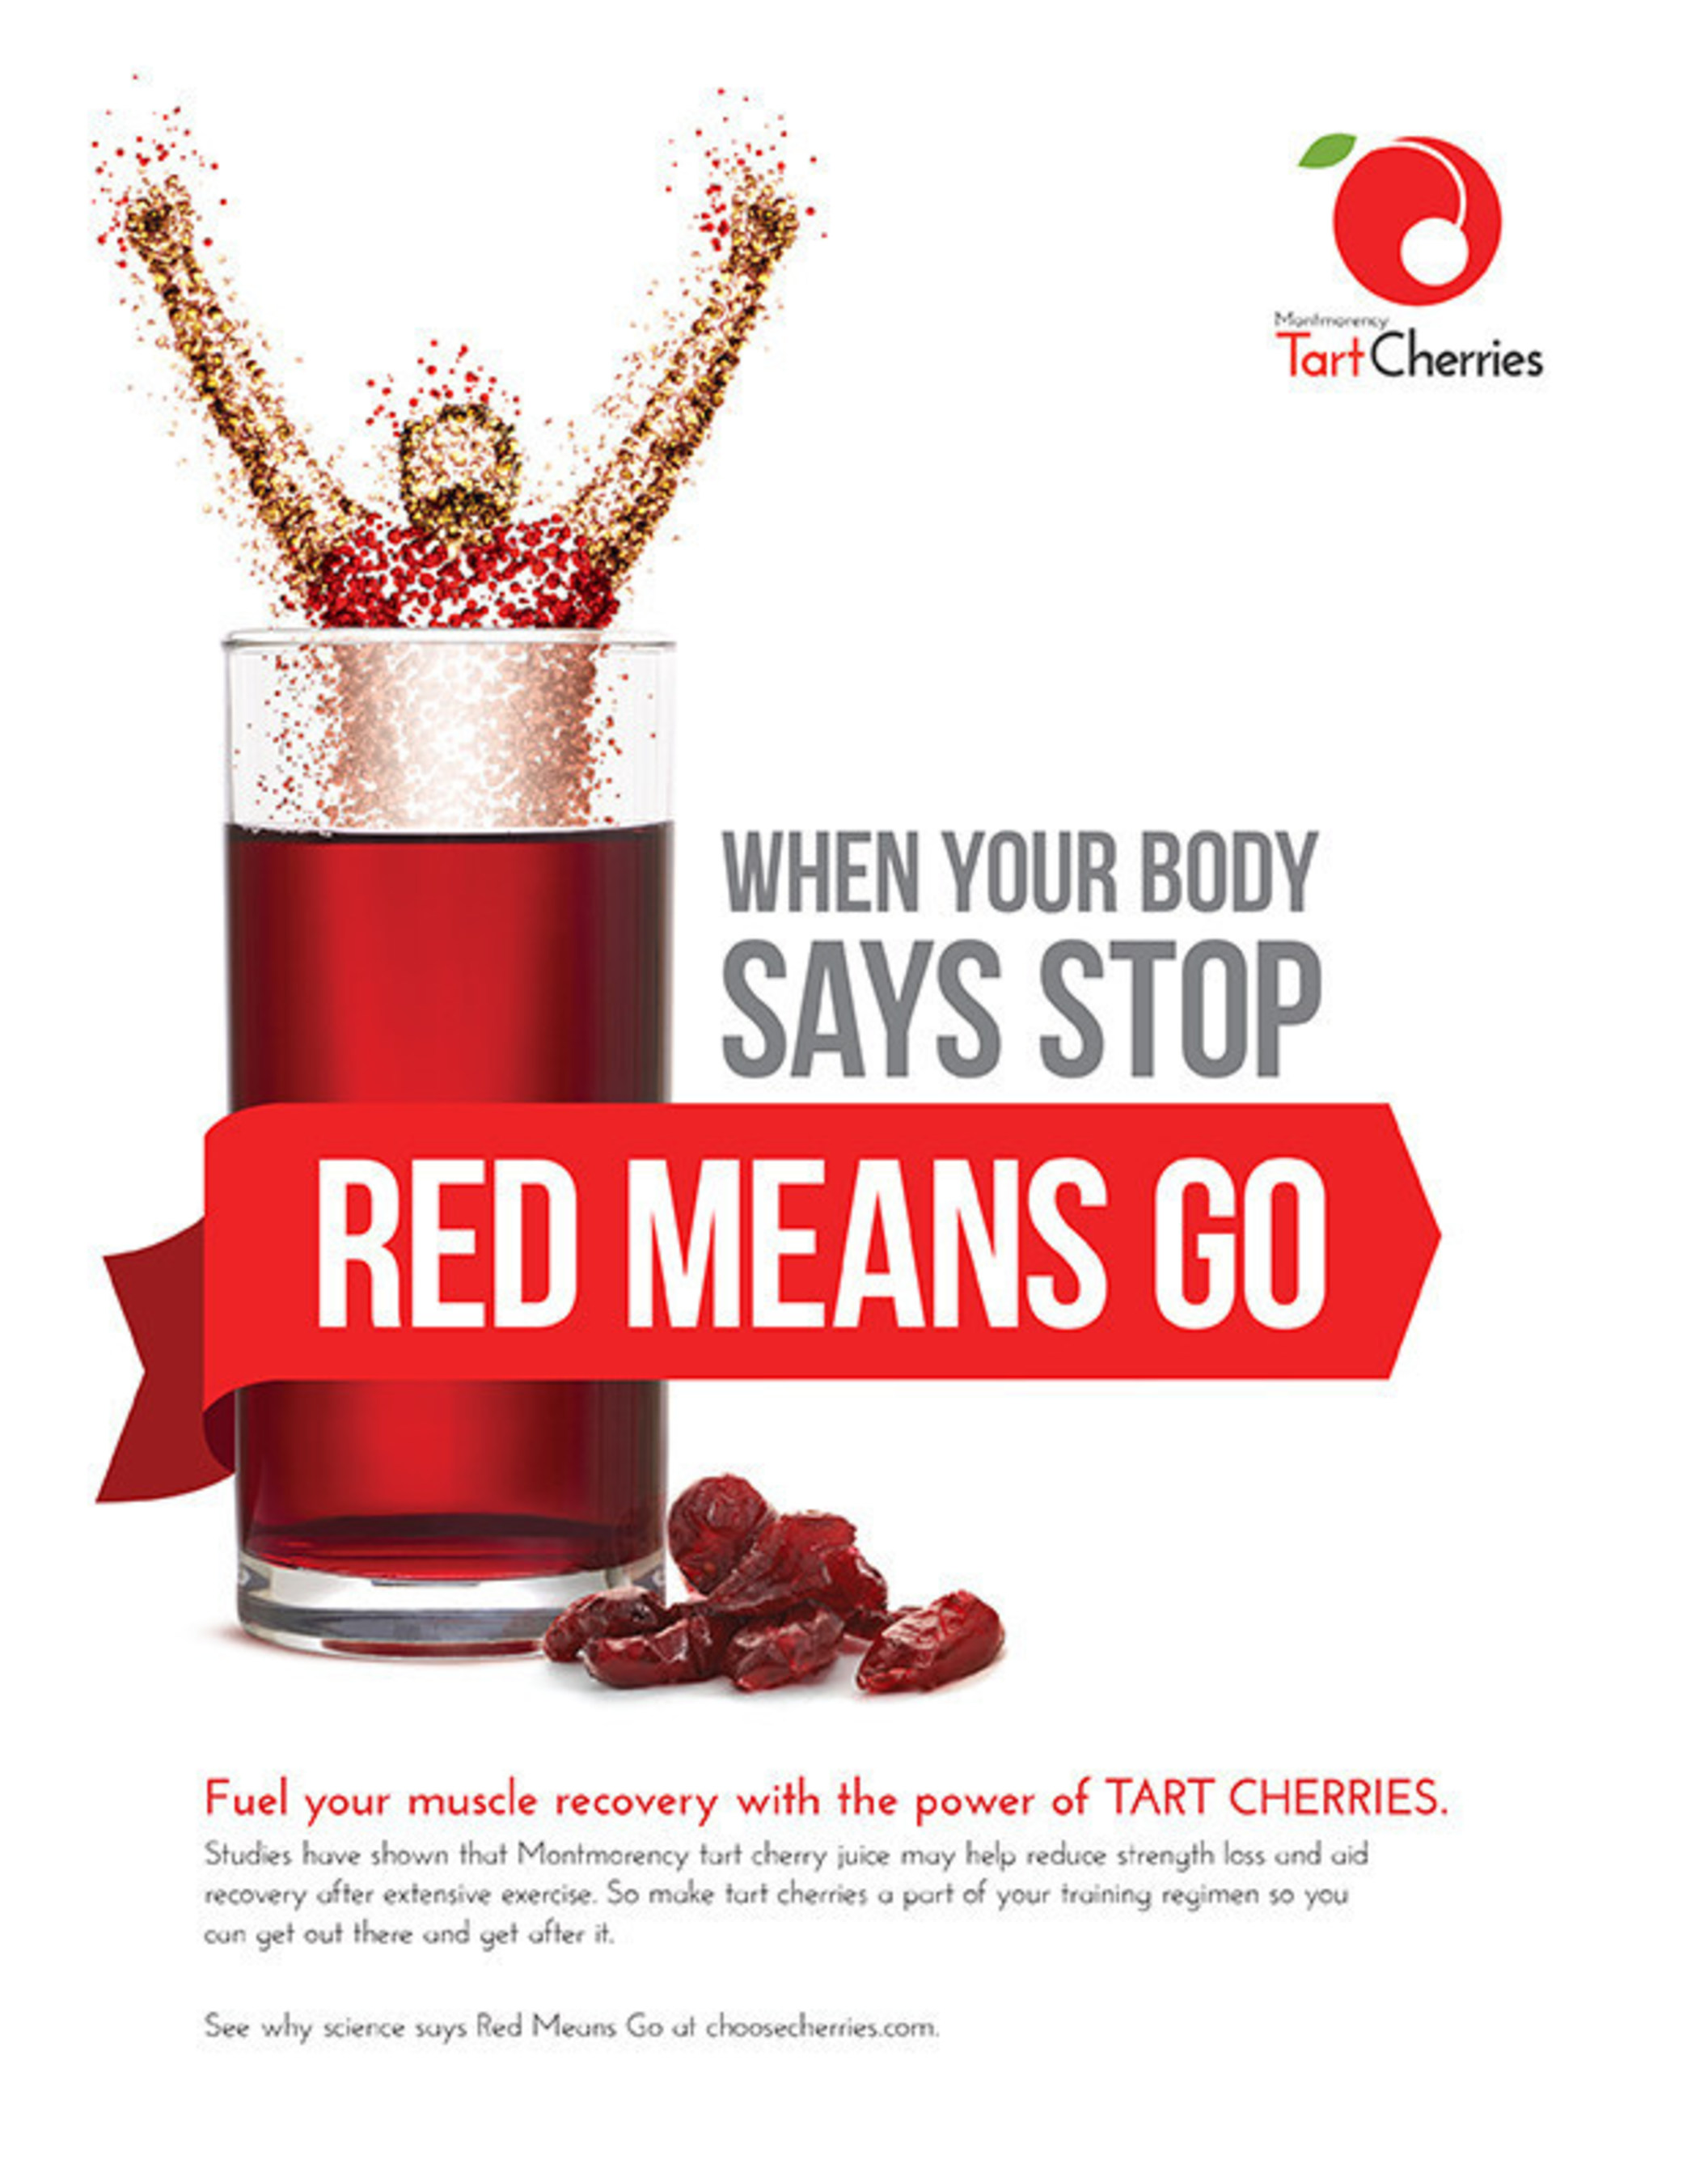 Red Means Go: Tart Cherry Industry Launches Campaign Encouraging